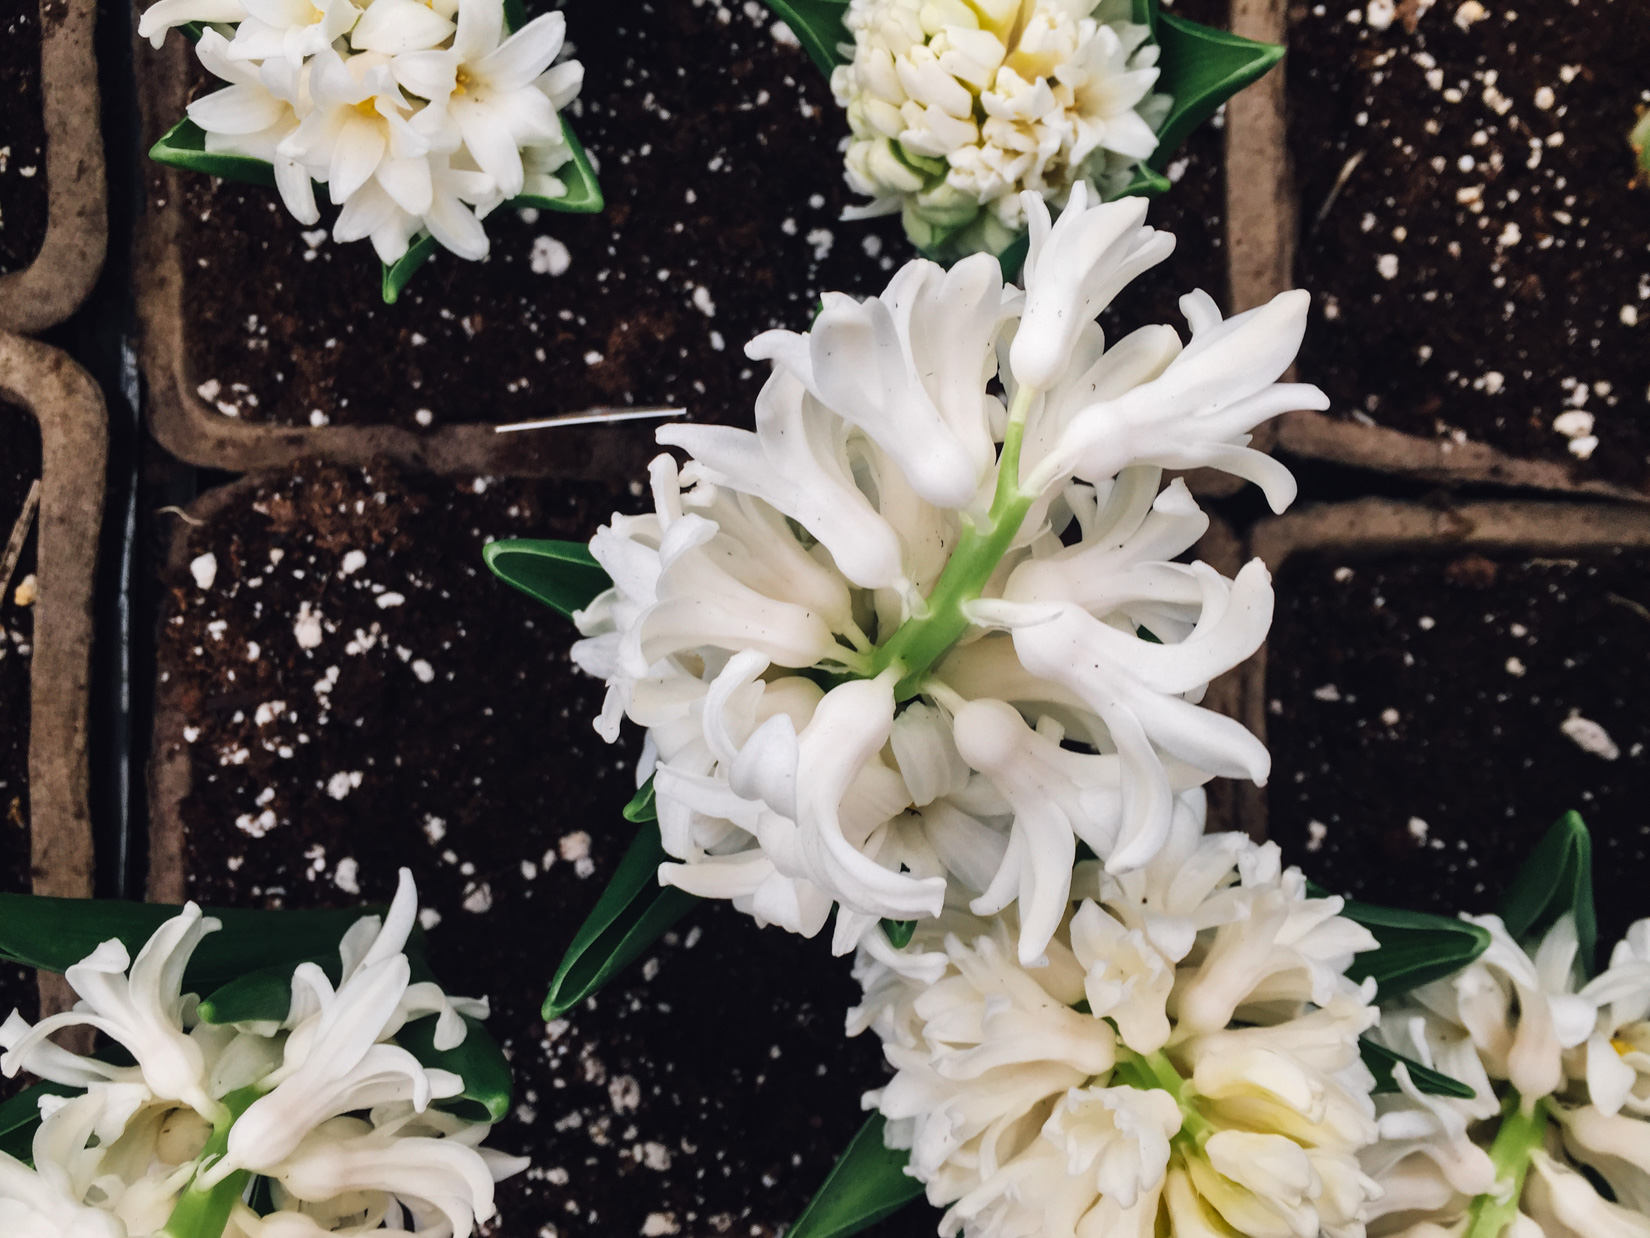 White Flowers in Soil